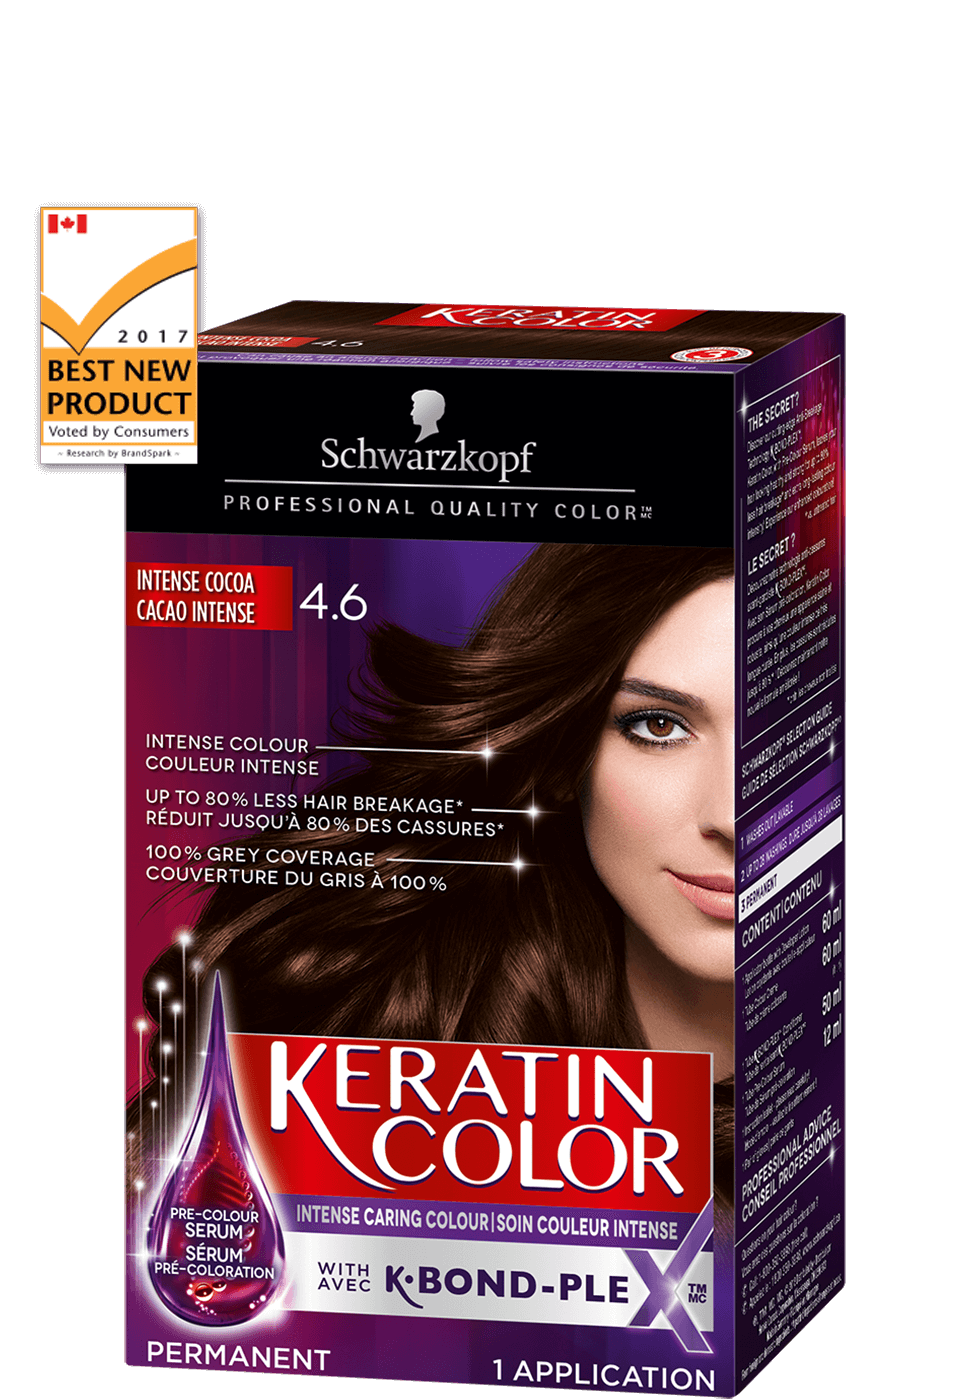 Keratin_Color_en_4_6_BNP_970x1400